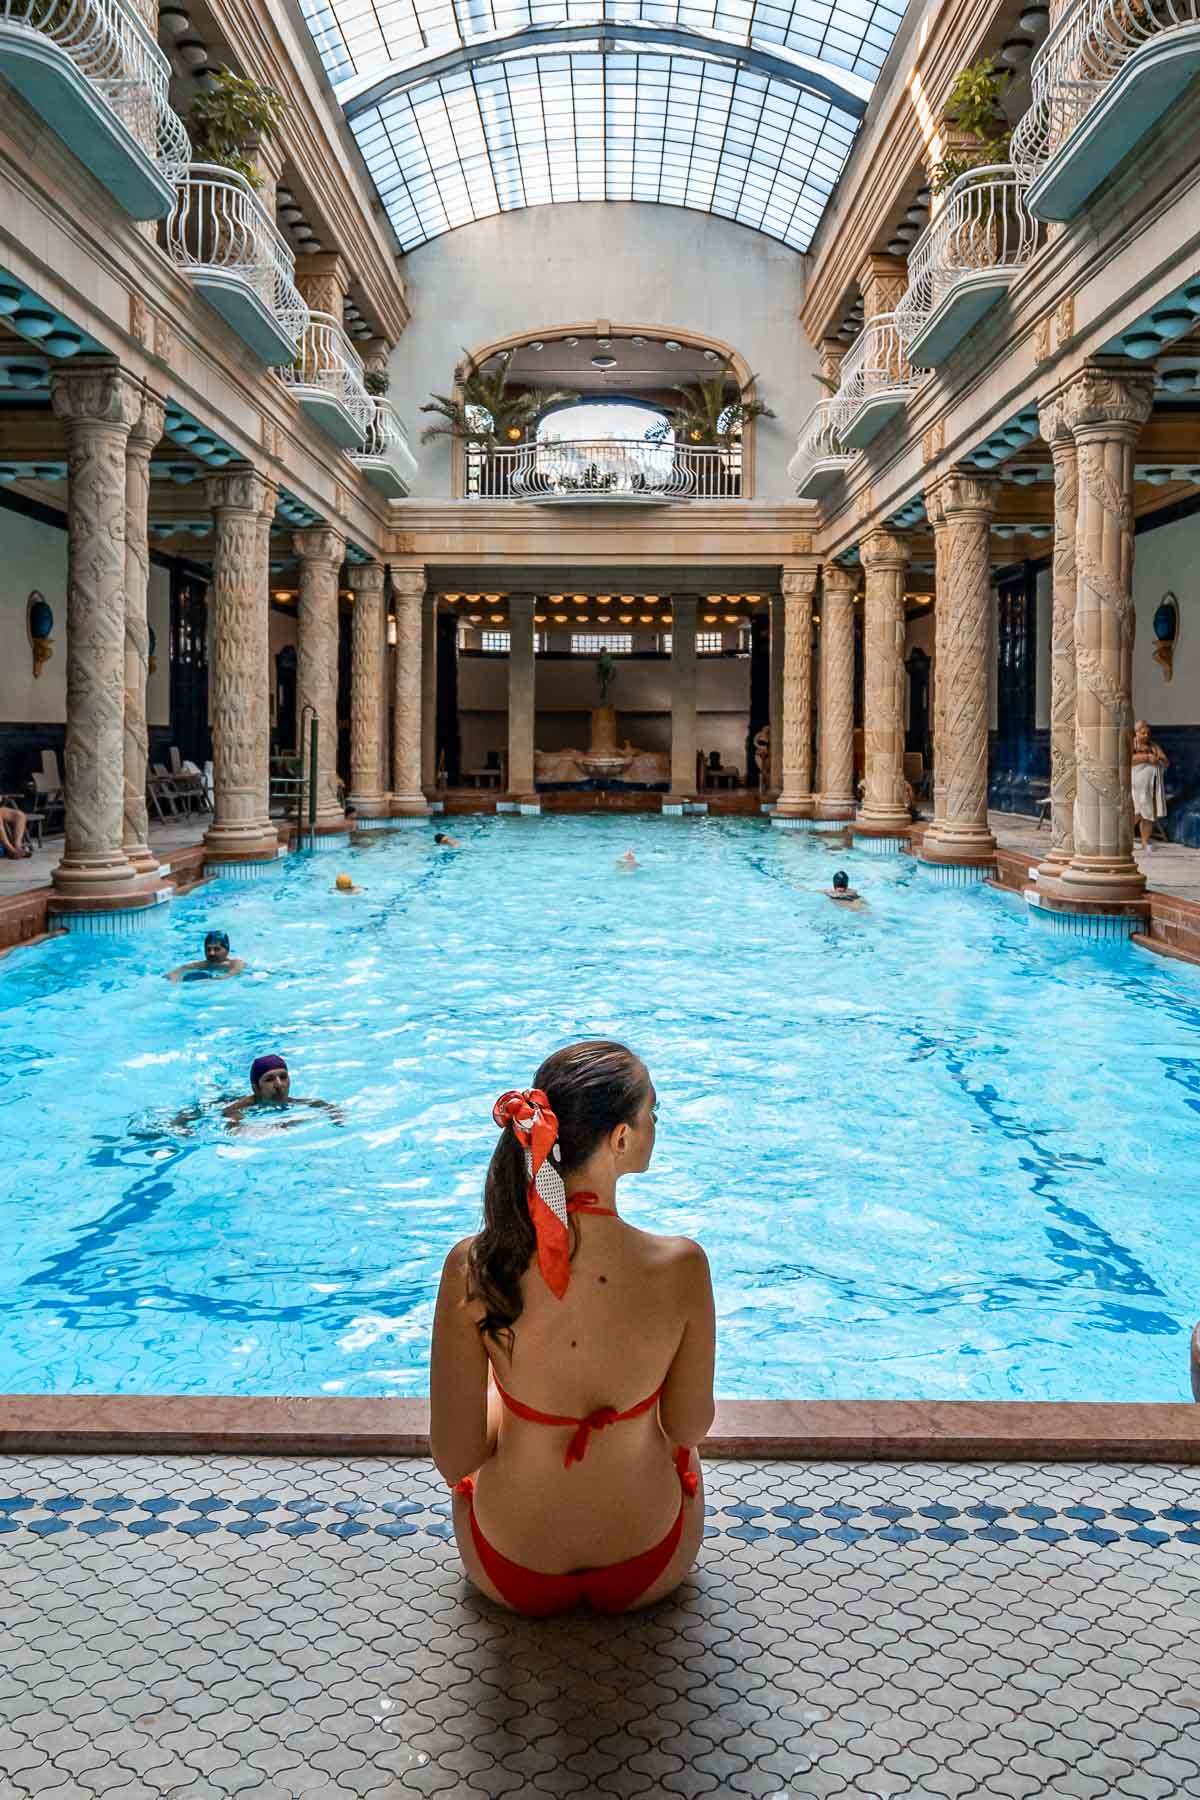 Girl in a red bikini sitting in front of a pool at the Gellert Baths in Budapest